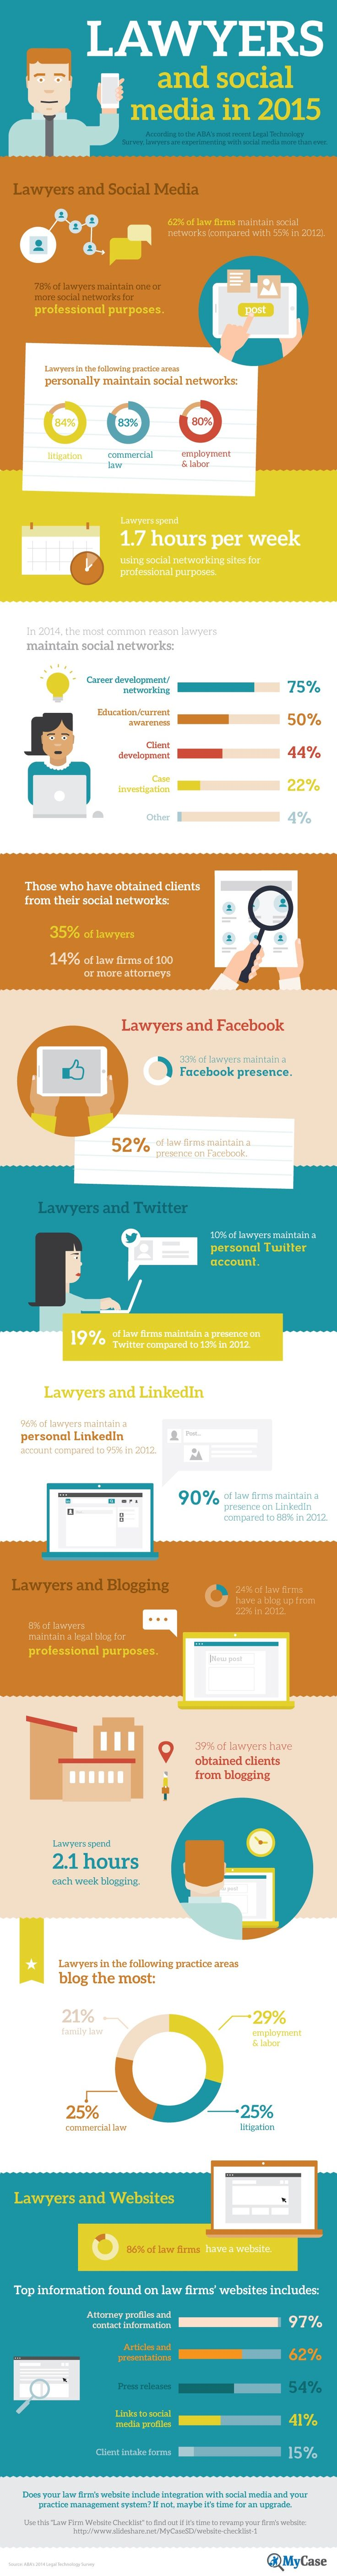 How are Lawyers Using Social Media? [INFOGRAPHIC] - Did you know that a recent survey found that 62 percent of law firms maintain a presence on social networks, up from 55 percent in 2012?  78 percent of lawyers themselves manage one or more social networks for professional purposes, with those in litigation, commercial law and employment/labor most prominent.   via @borntobesocial